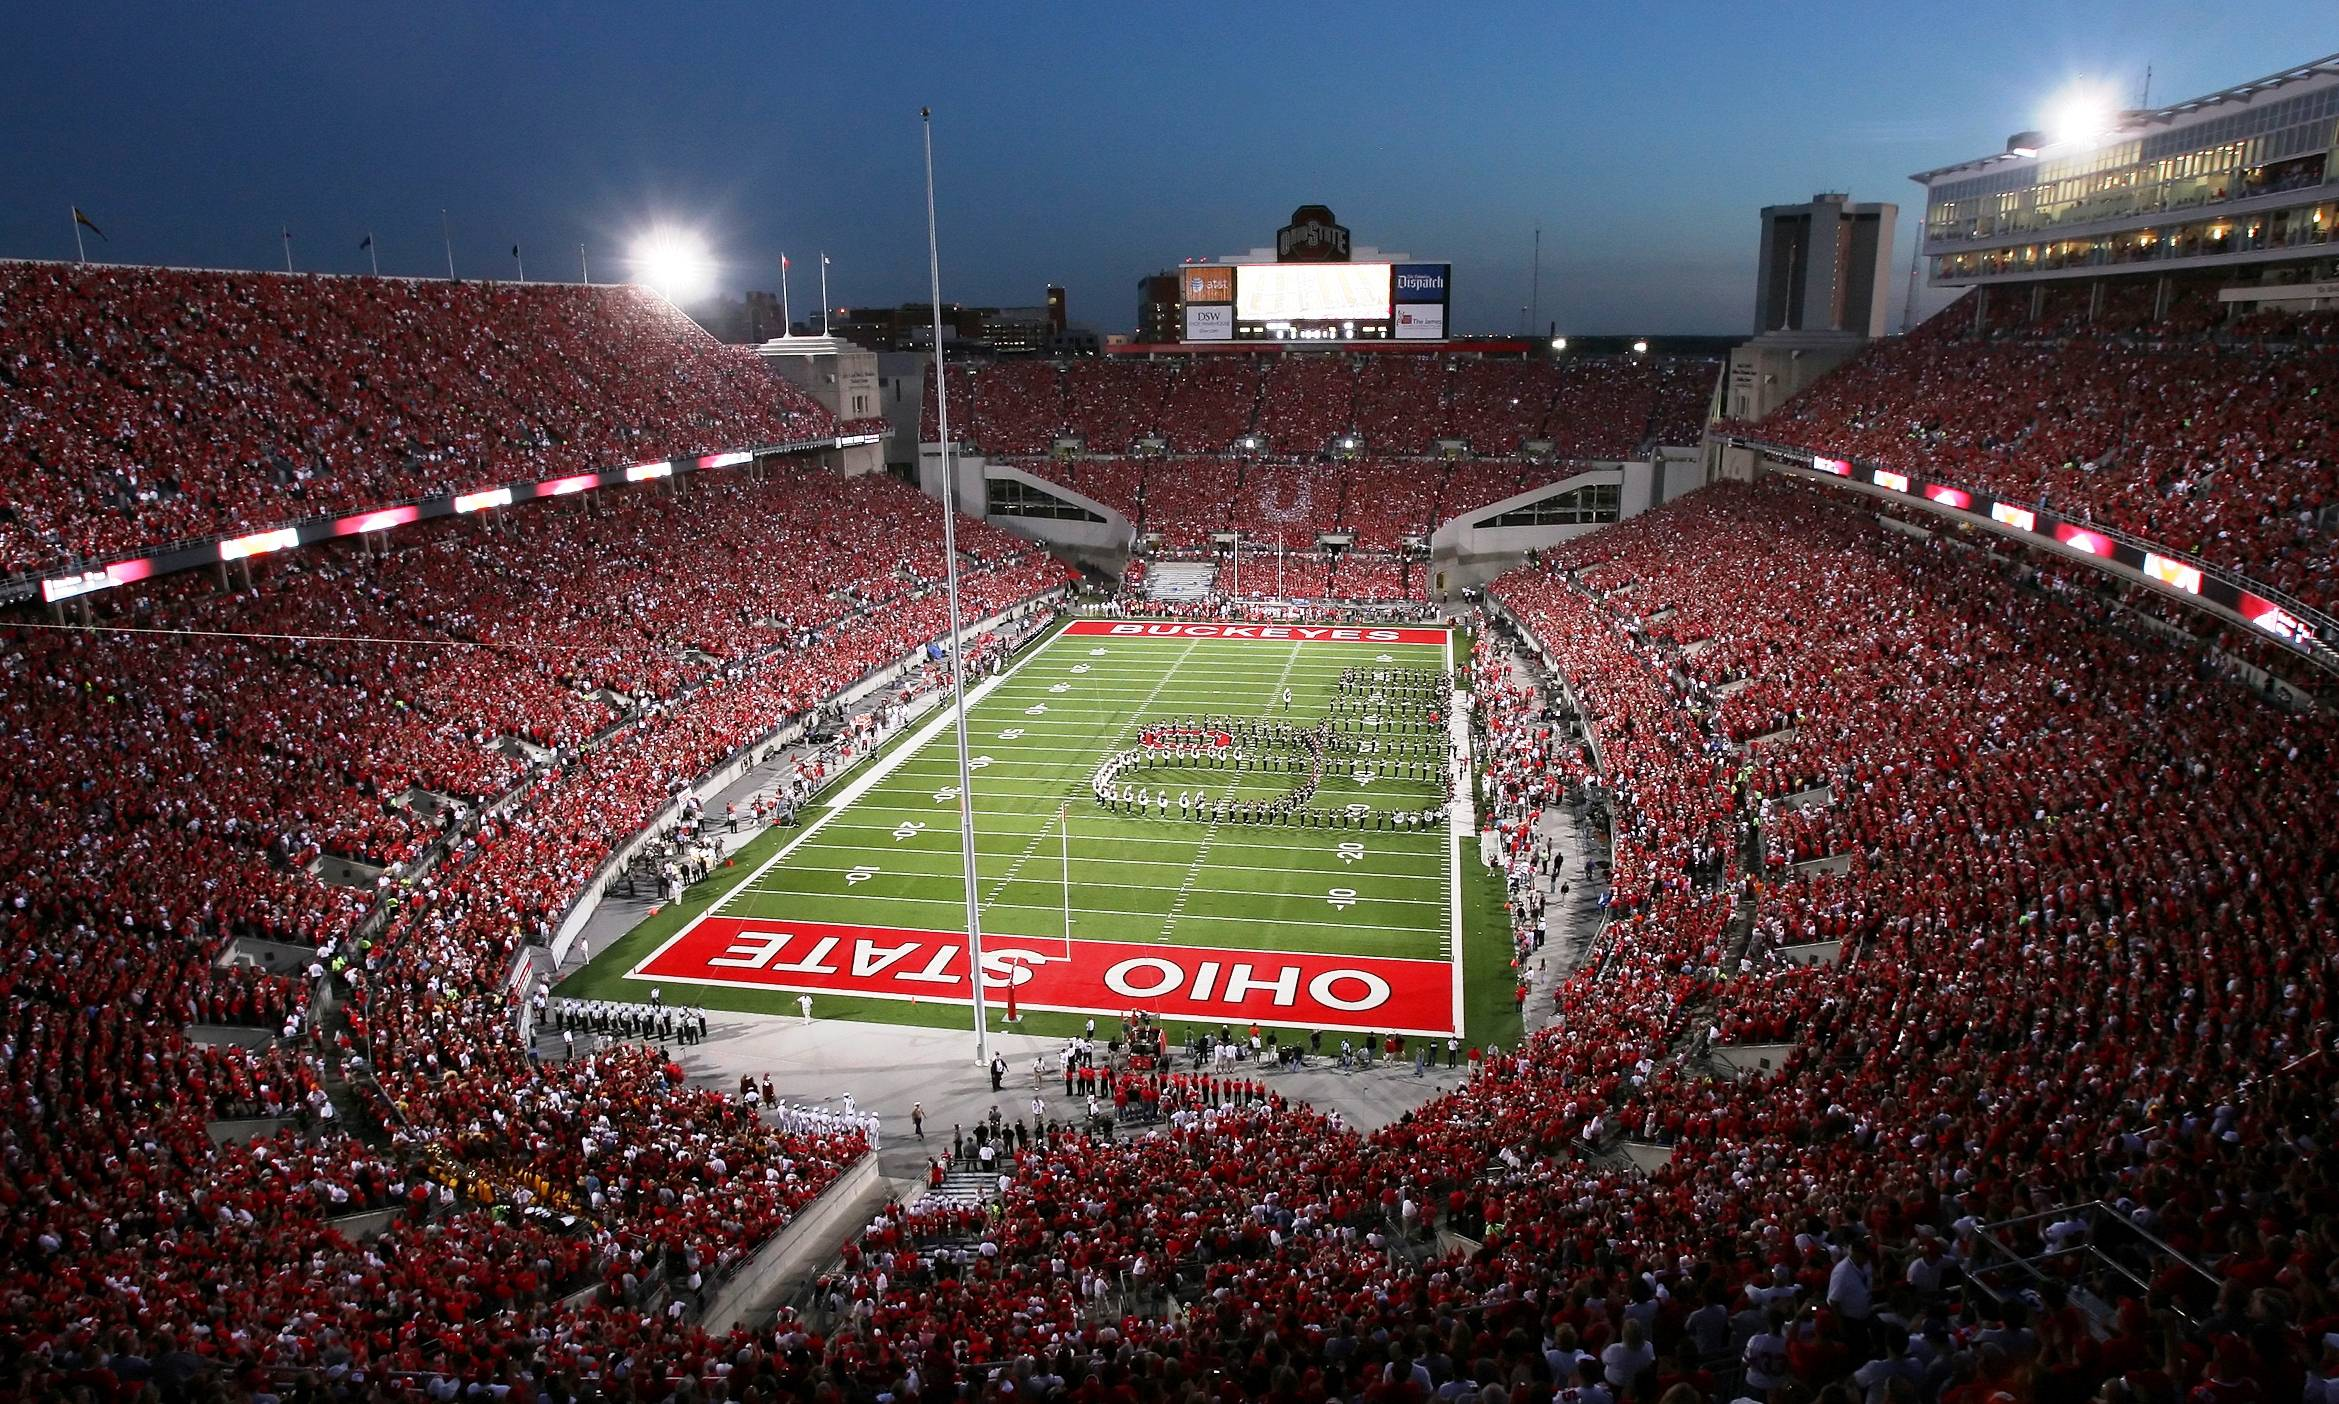 OHIO STATE BUCKEYES college football (23) wallpaper | 2339x1404 | 210990 | WallpaperUP